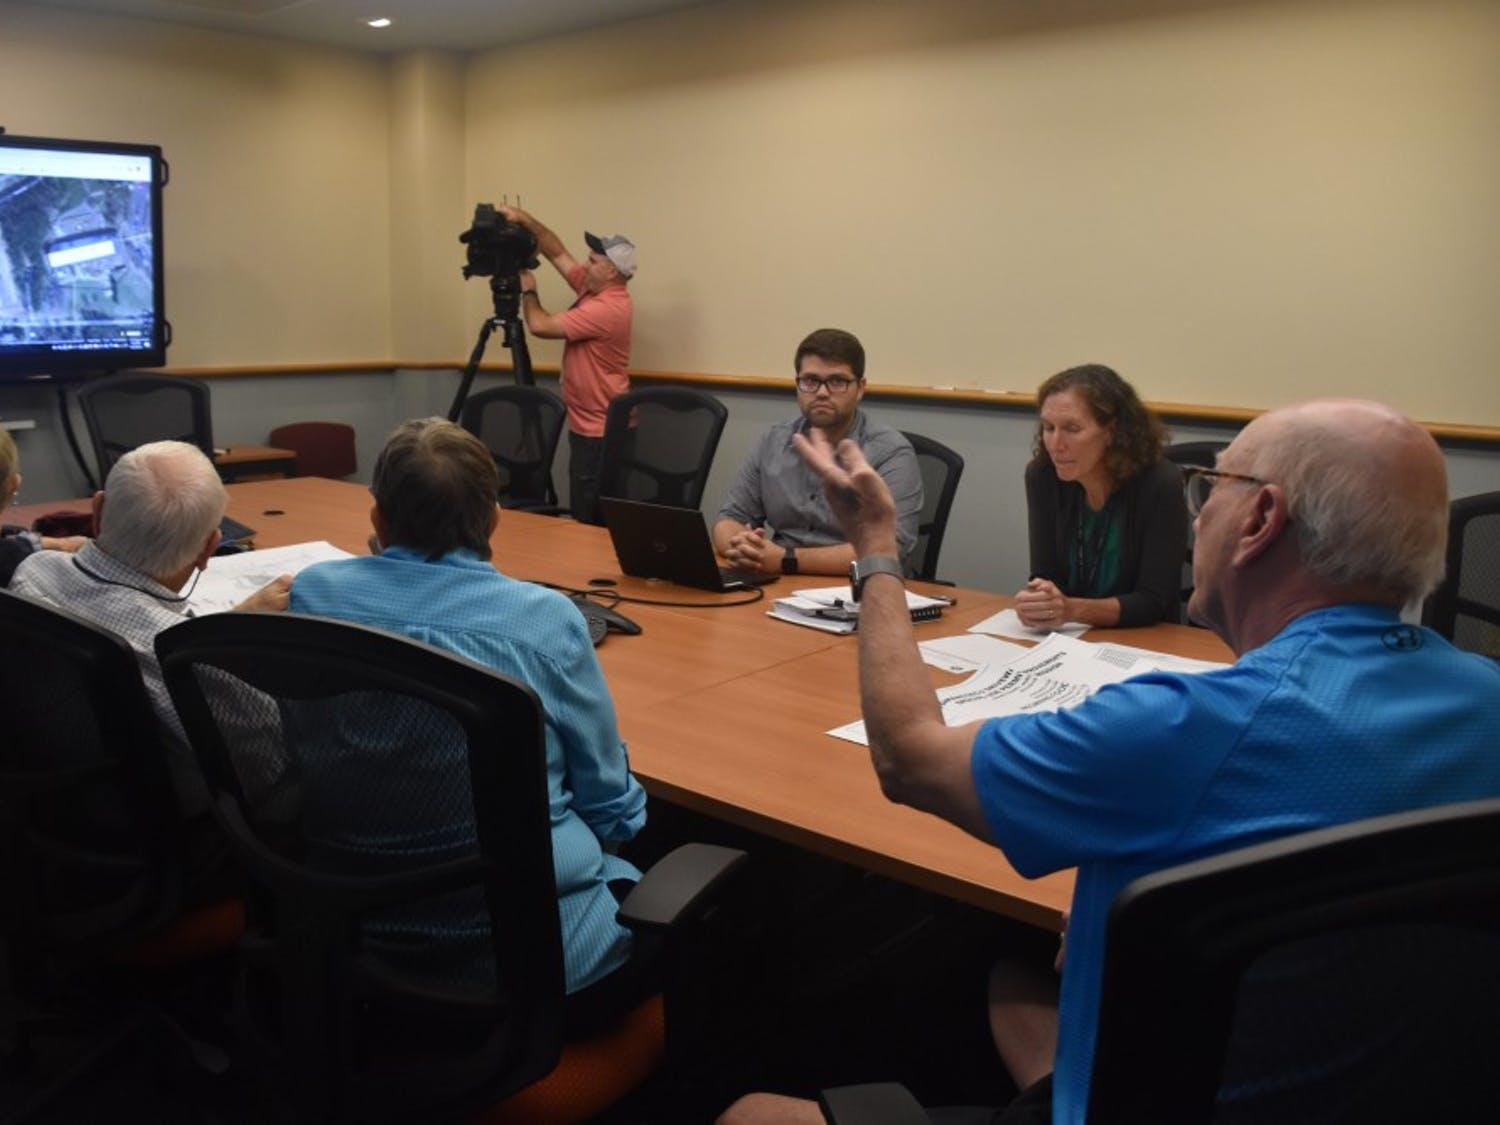 A public meeting was held at Chapel Hill Town Hall to discuss a potential new Wegmans development on Monday, Oct. 7, 2019.